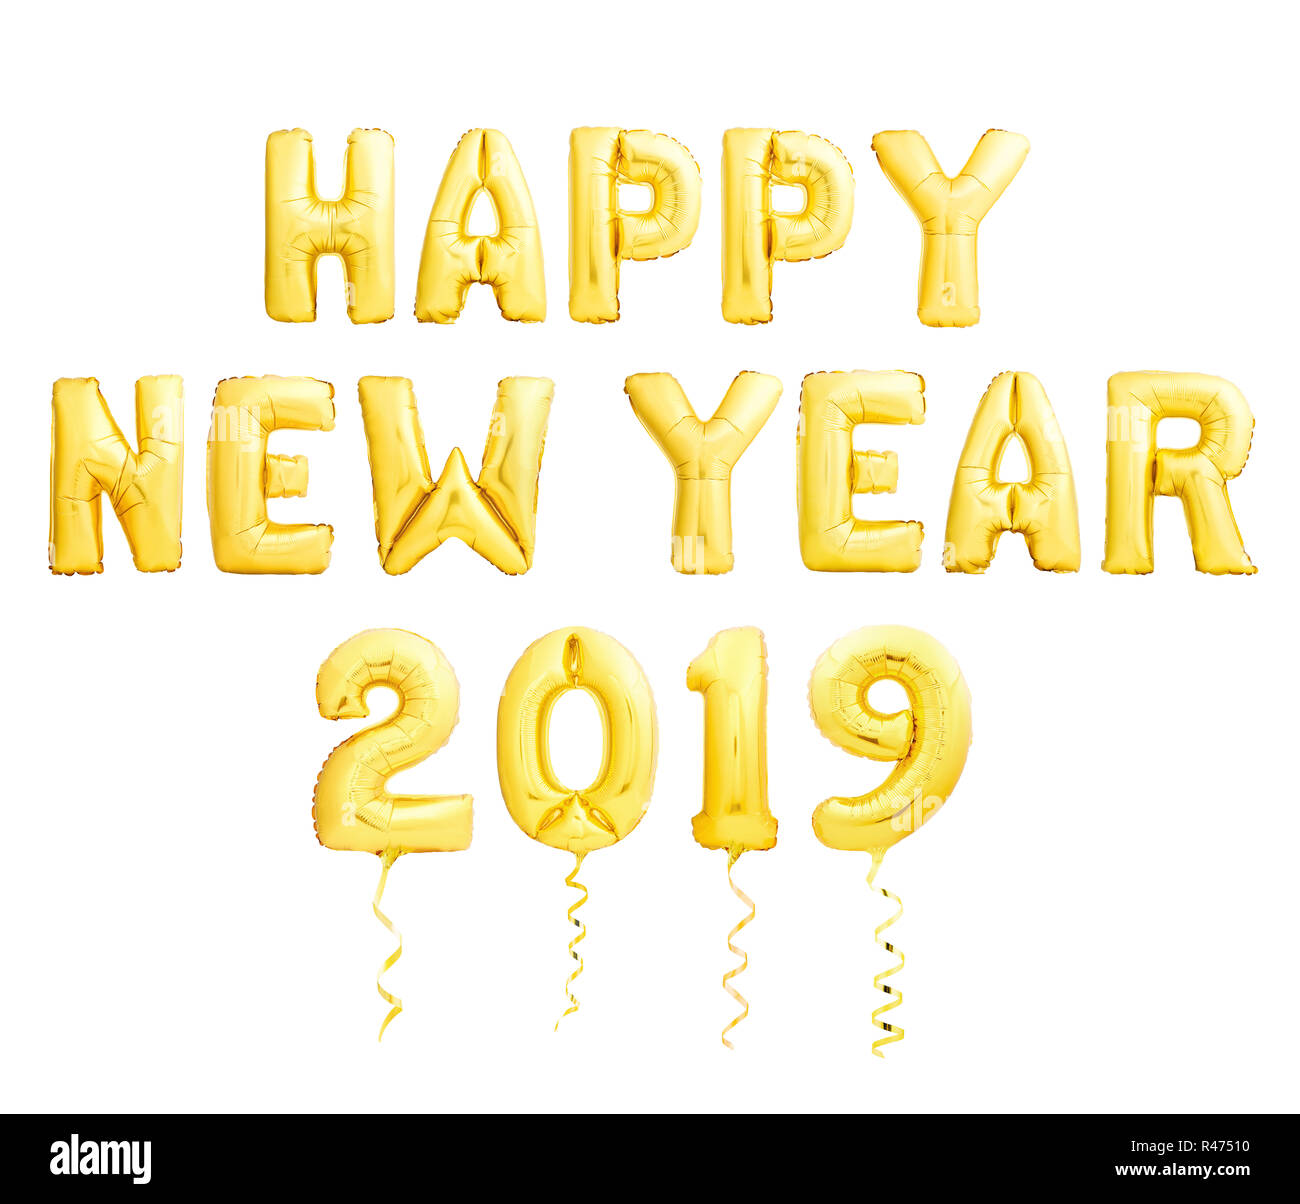 happy new year 2019 high resolution stock photography and images alamy https www alamy com happy new year 2019 concept made of golden inflatable balloons isolated on white background image226351020 html